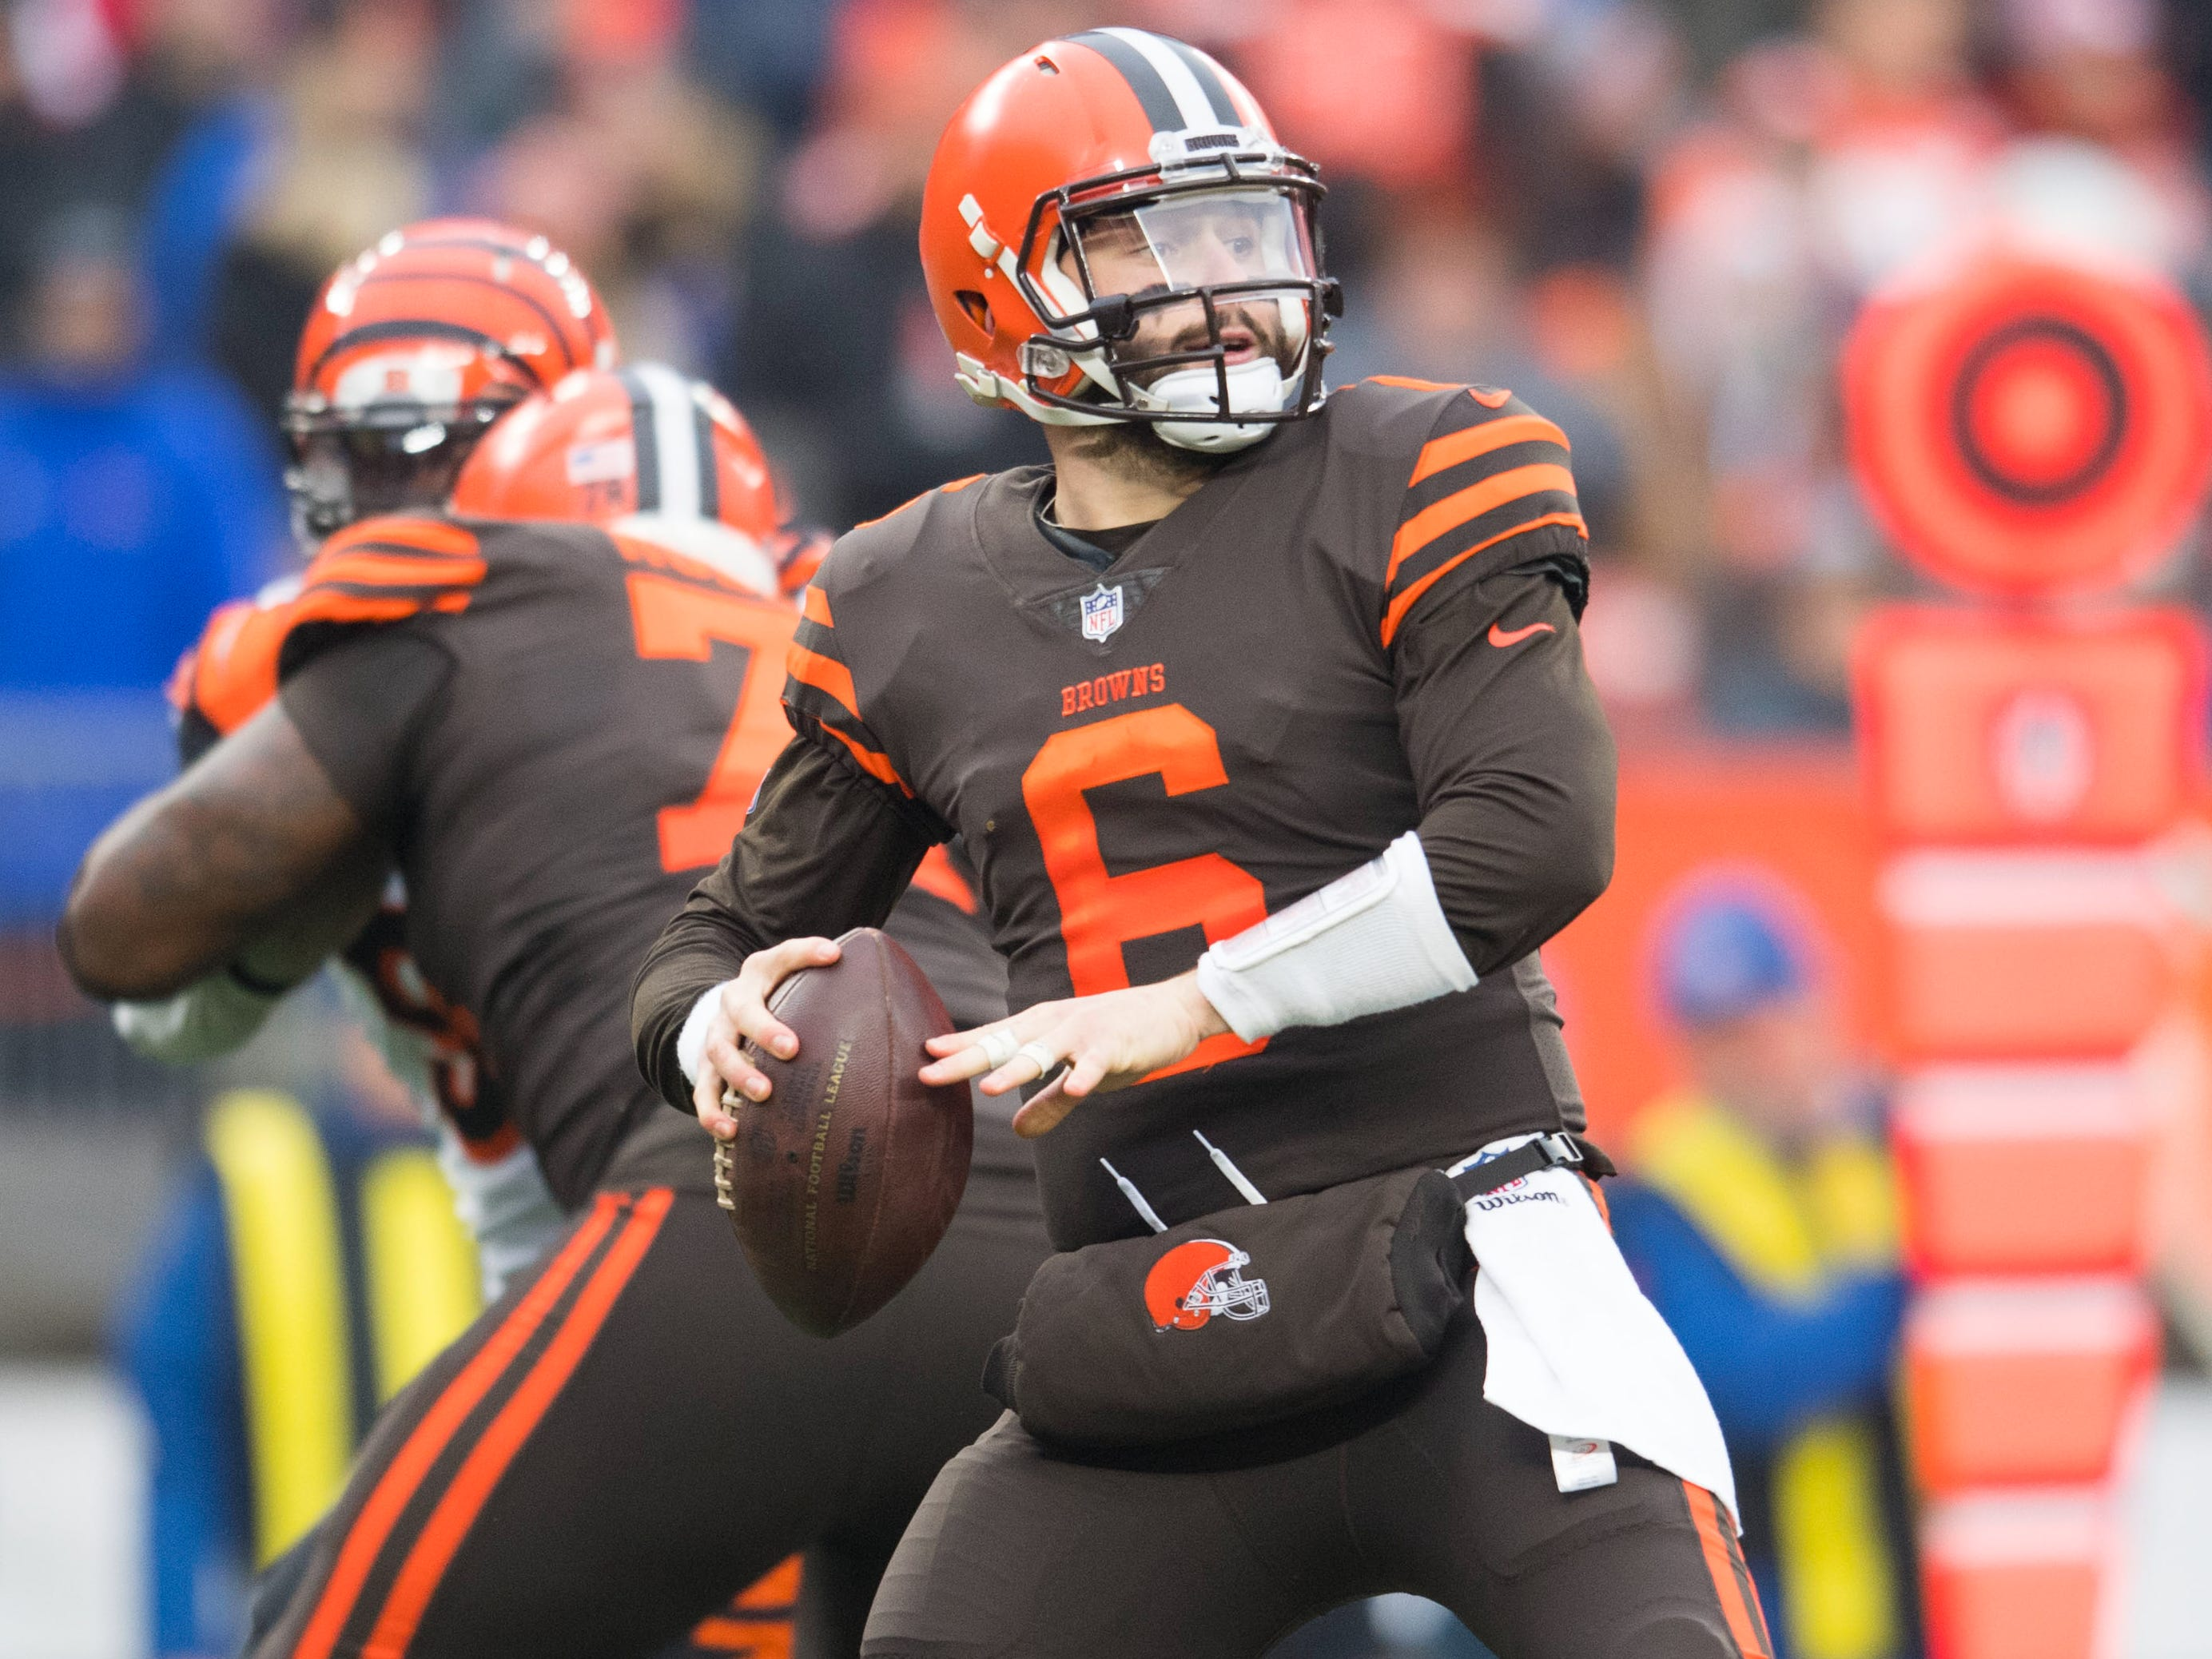 8. Browns (13): Remember, they went 5-3 post-Hue, QB Baker Mayfield thriving under Freddie Kitchens' tutelage. And we hear Cleveland has added a few guys since.